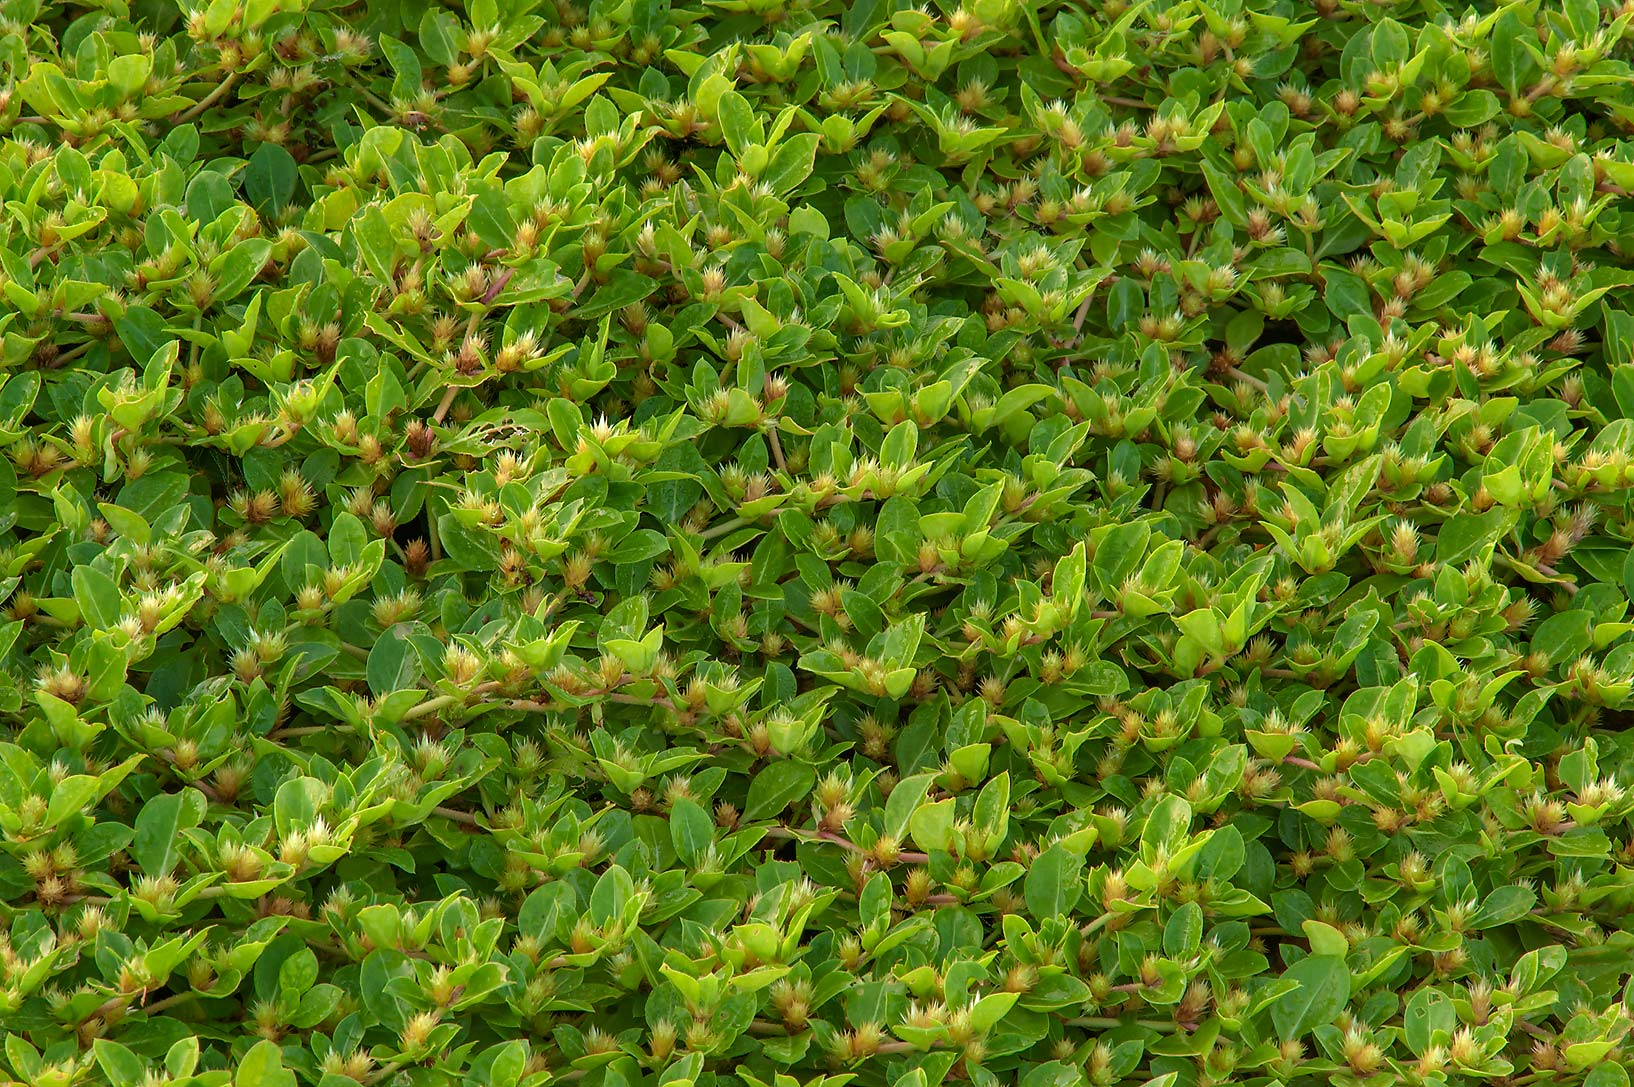 Carpet of Khaki Burr weed (Alternanthera pungens...in Irkhaya (Irkaya) Farms. Qatar